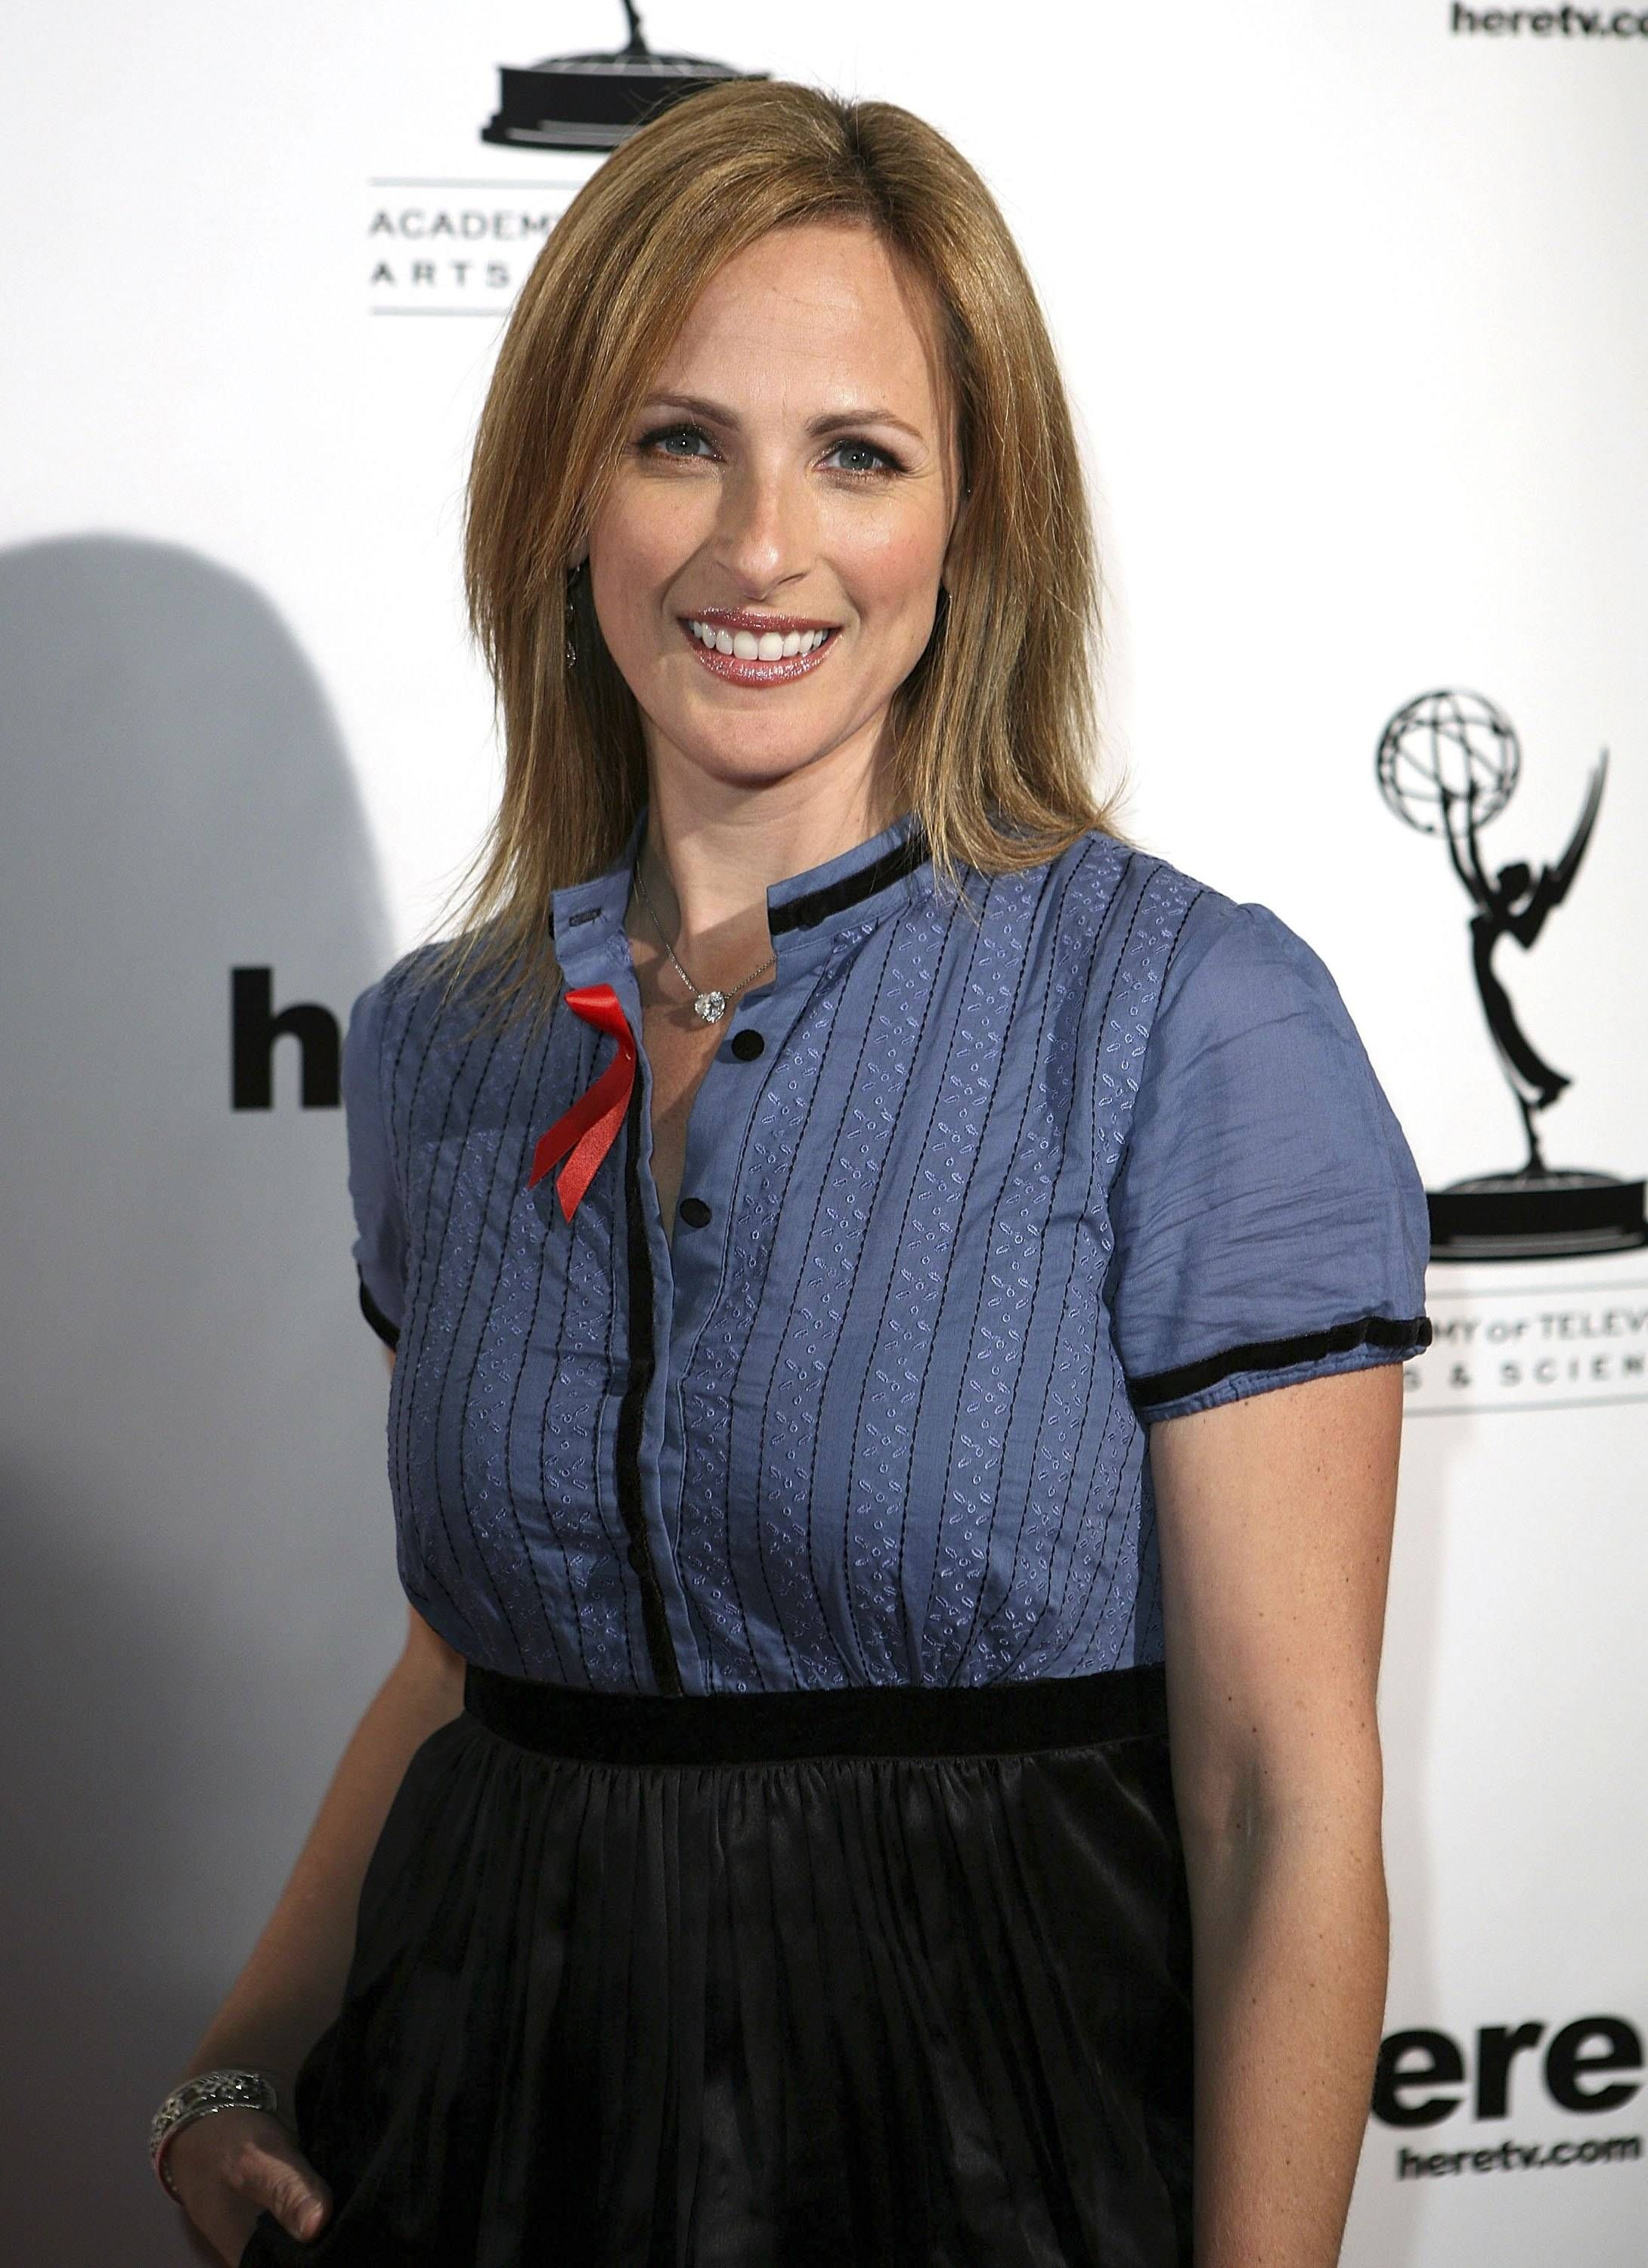 marlee matlin imdbmarlee matlin instagram, marlee matlin wiki, marlee matlin speaking, marlee matlin oscar, marlee matlin family guy, marlee matlin net worth, marlee matlin interview, marlee matlin, marlee matlin biography, marlee matlin super bowl, marlee matlin dancing with the stars, marlee matlin william hurt, marlee matlin twitter, marlee matlin switched at birth, marlee matlin desperate housewives, marlee matlin west wing, marlee matlin talking, marlee matlin imdb, marlee matlin feet, marlee matlin movies and tv shows